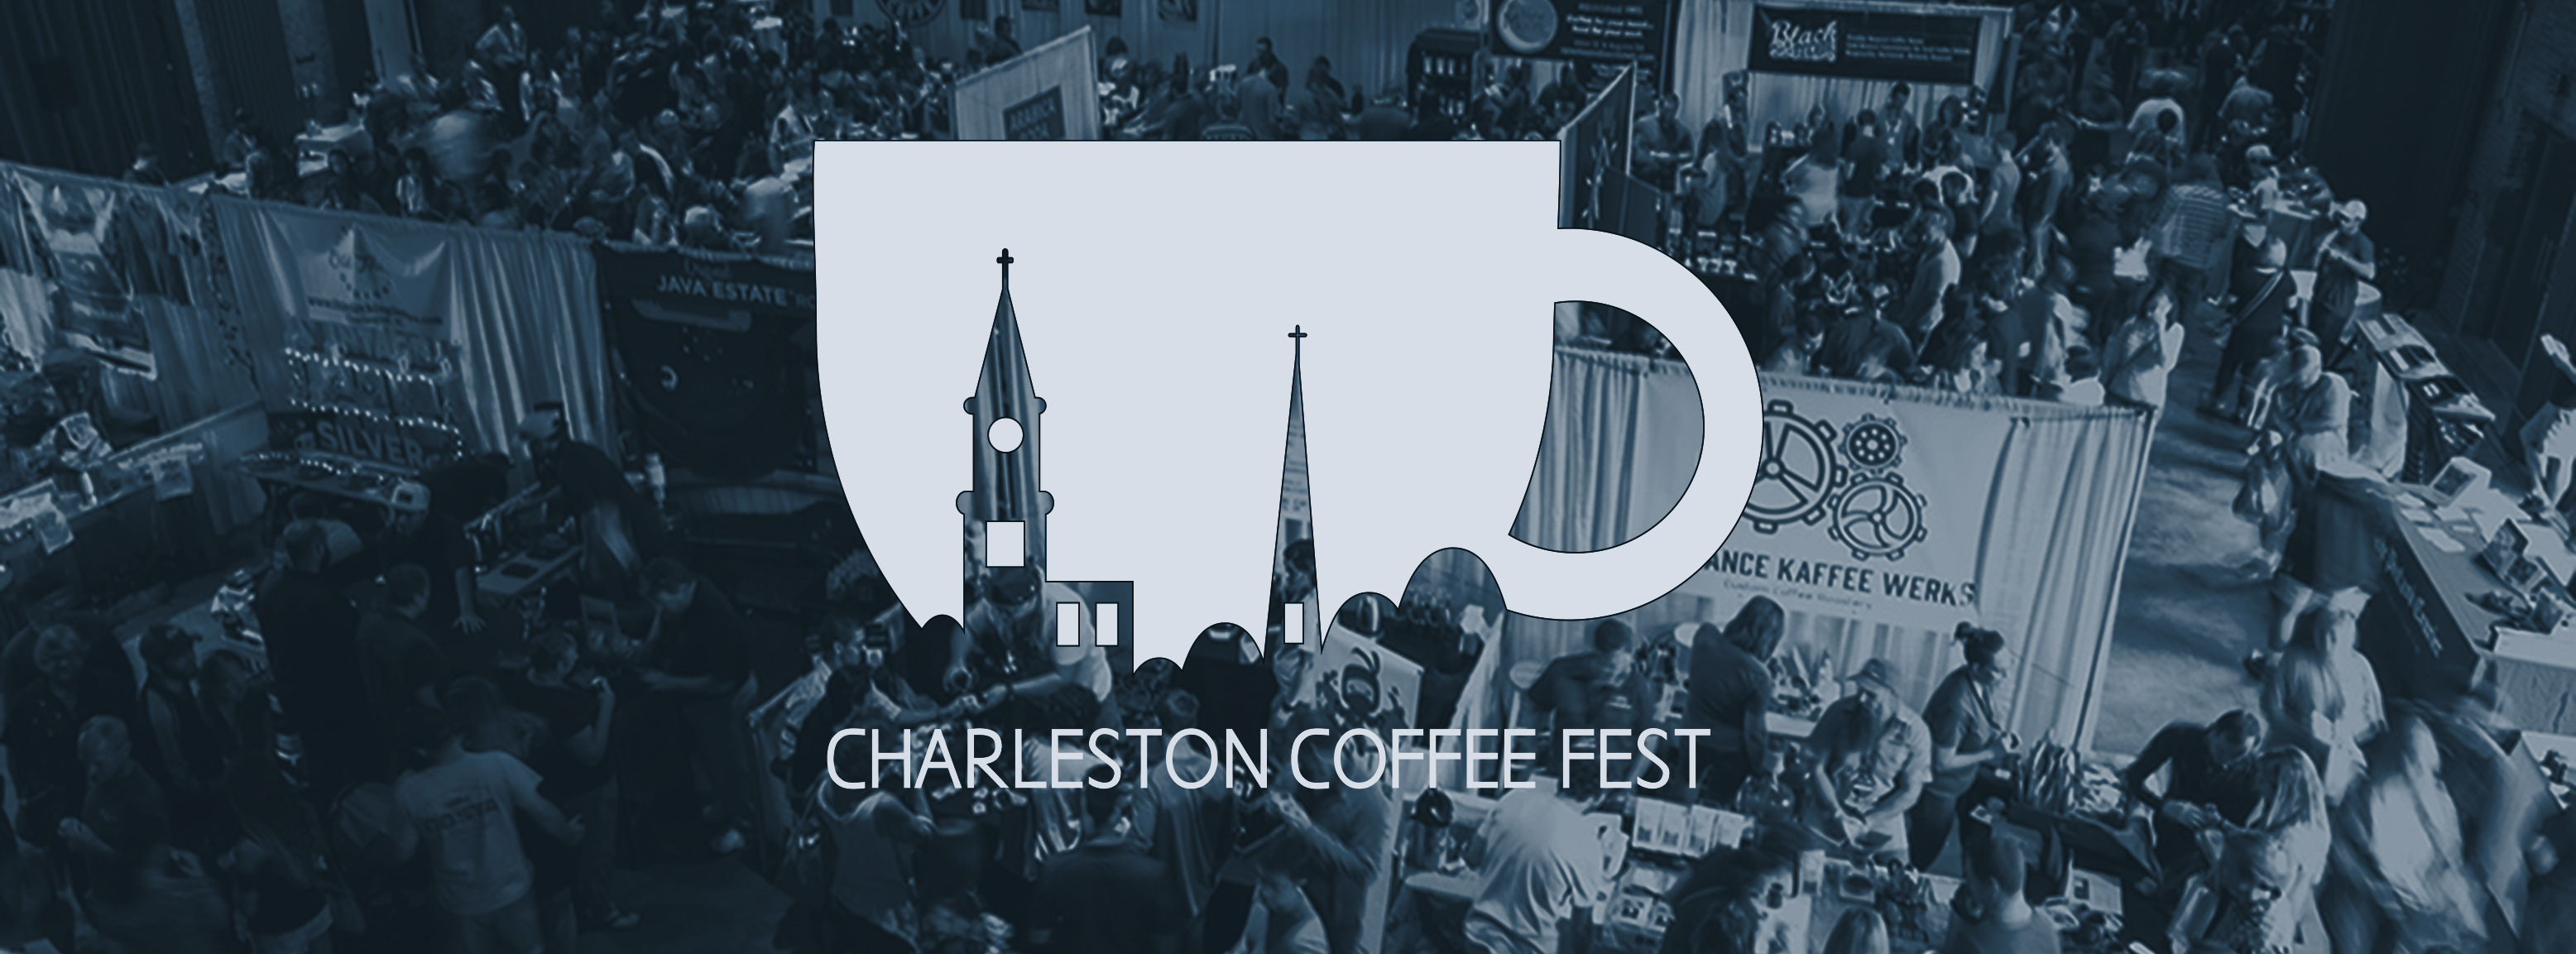 Charleston Coffee Fest logo